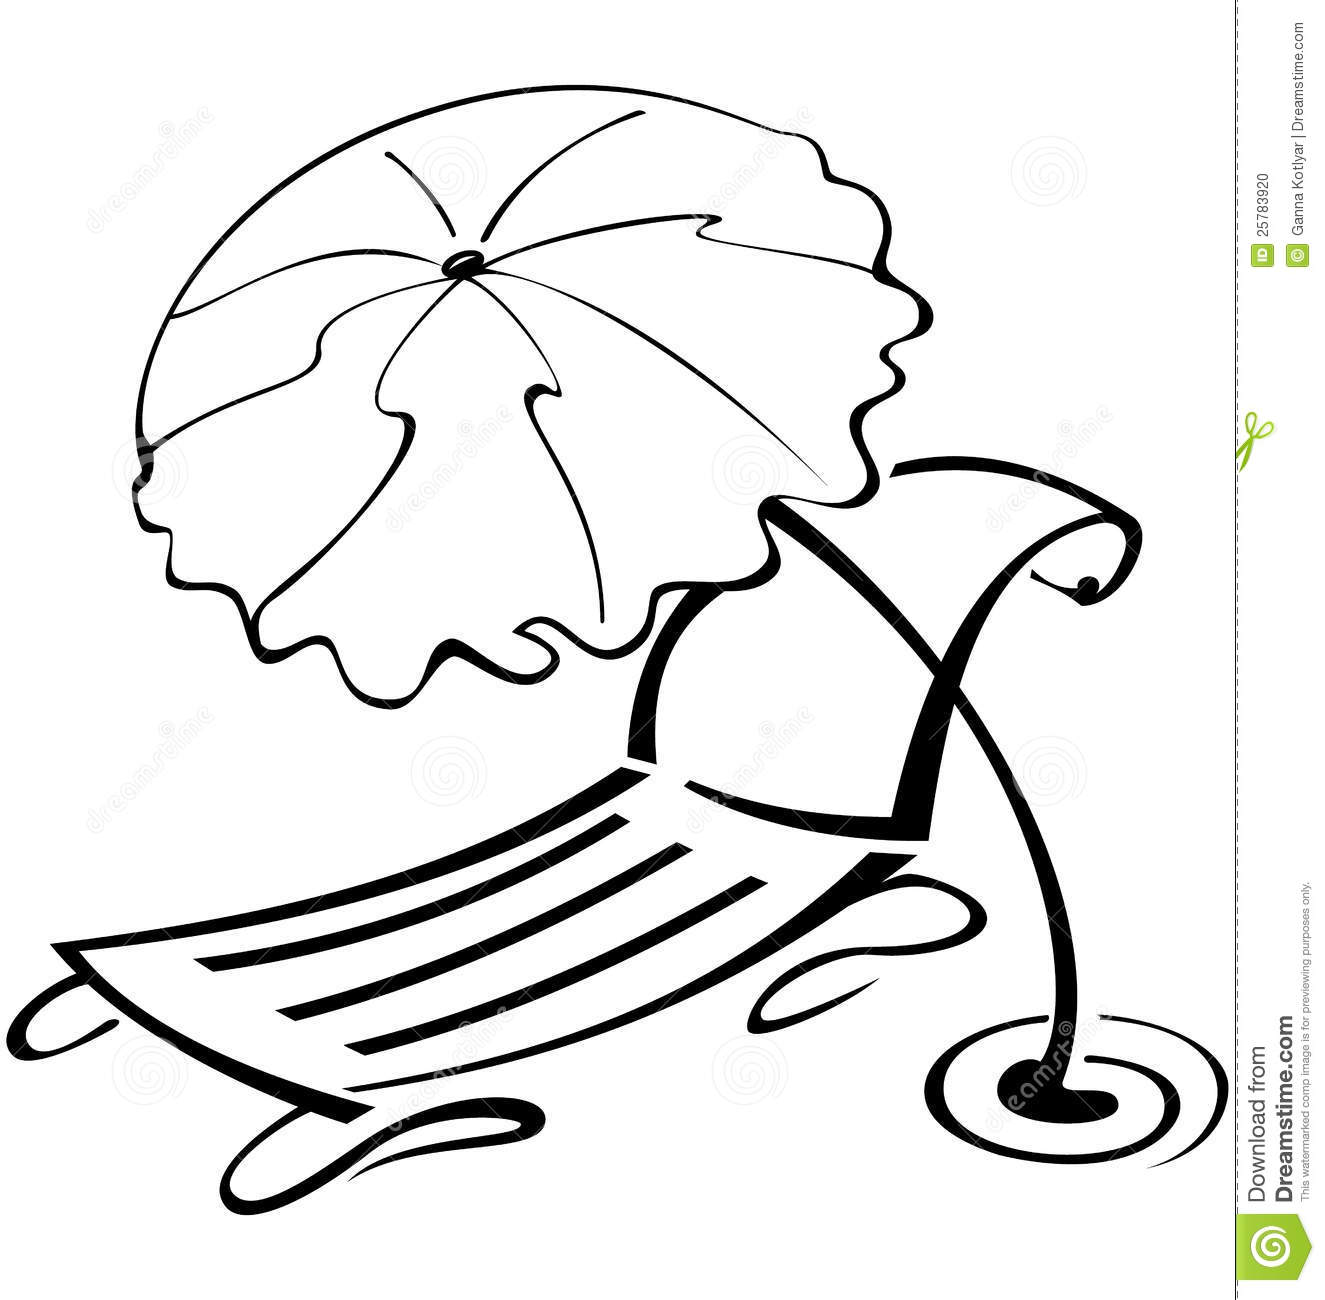 Liegestuhl Weiß Beach Umbrella Clipart Black And White | Clipart Panda